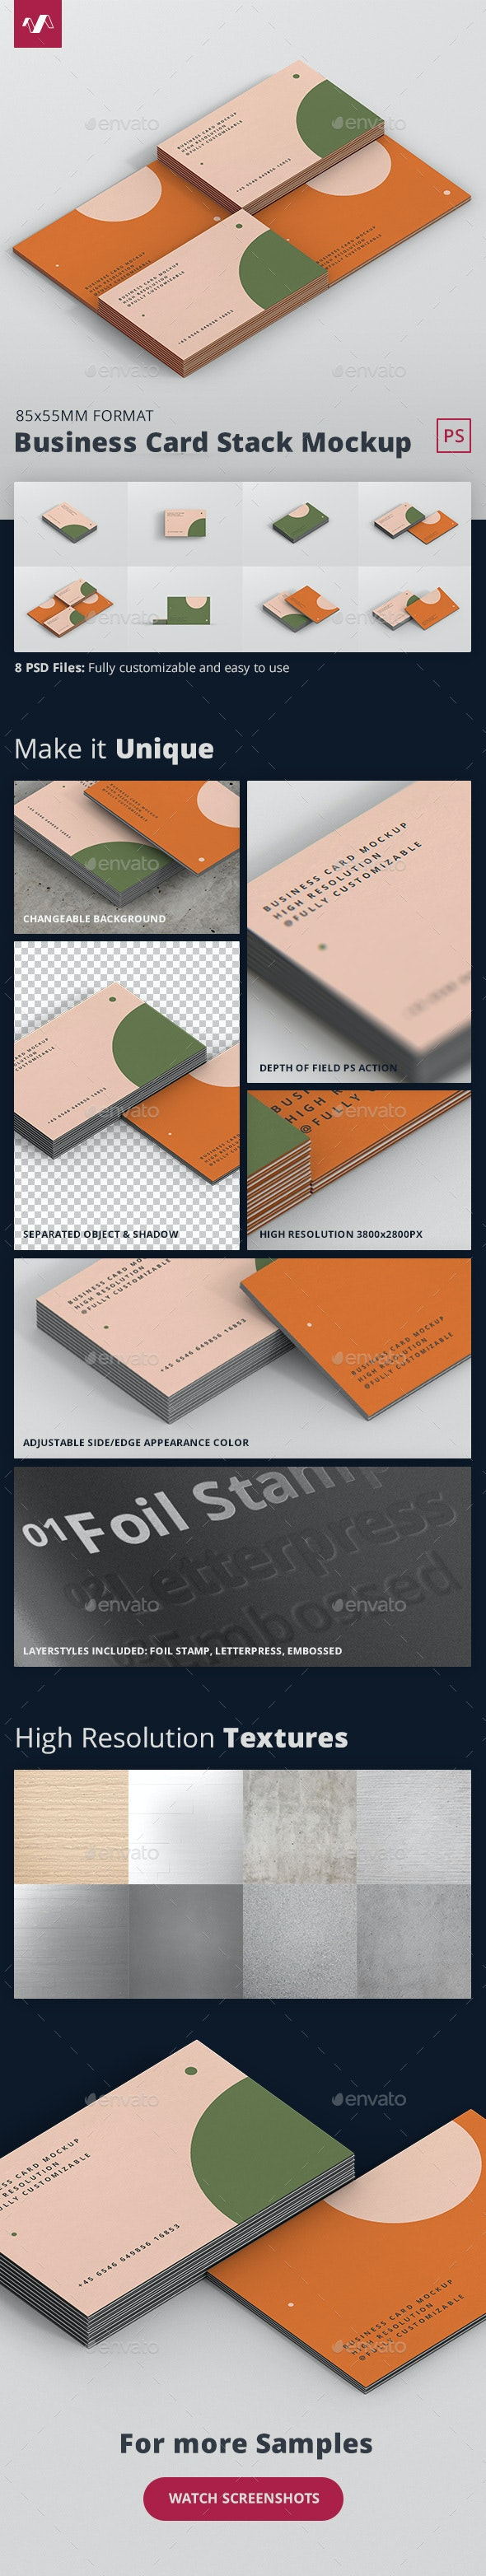 Business Card Stack Mockup - Business Cards Print